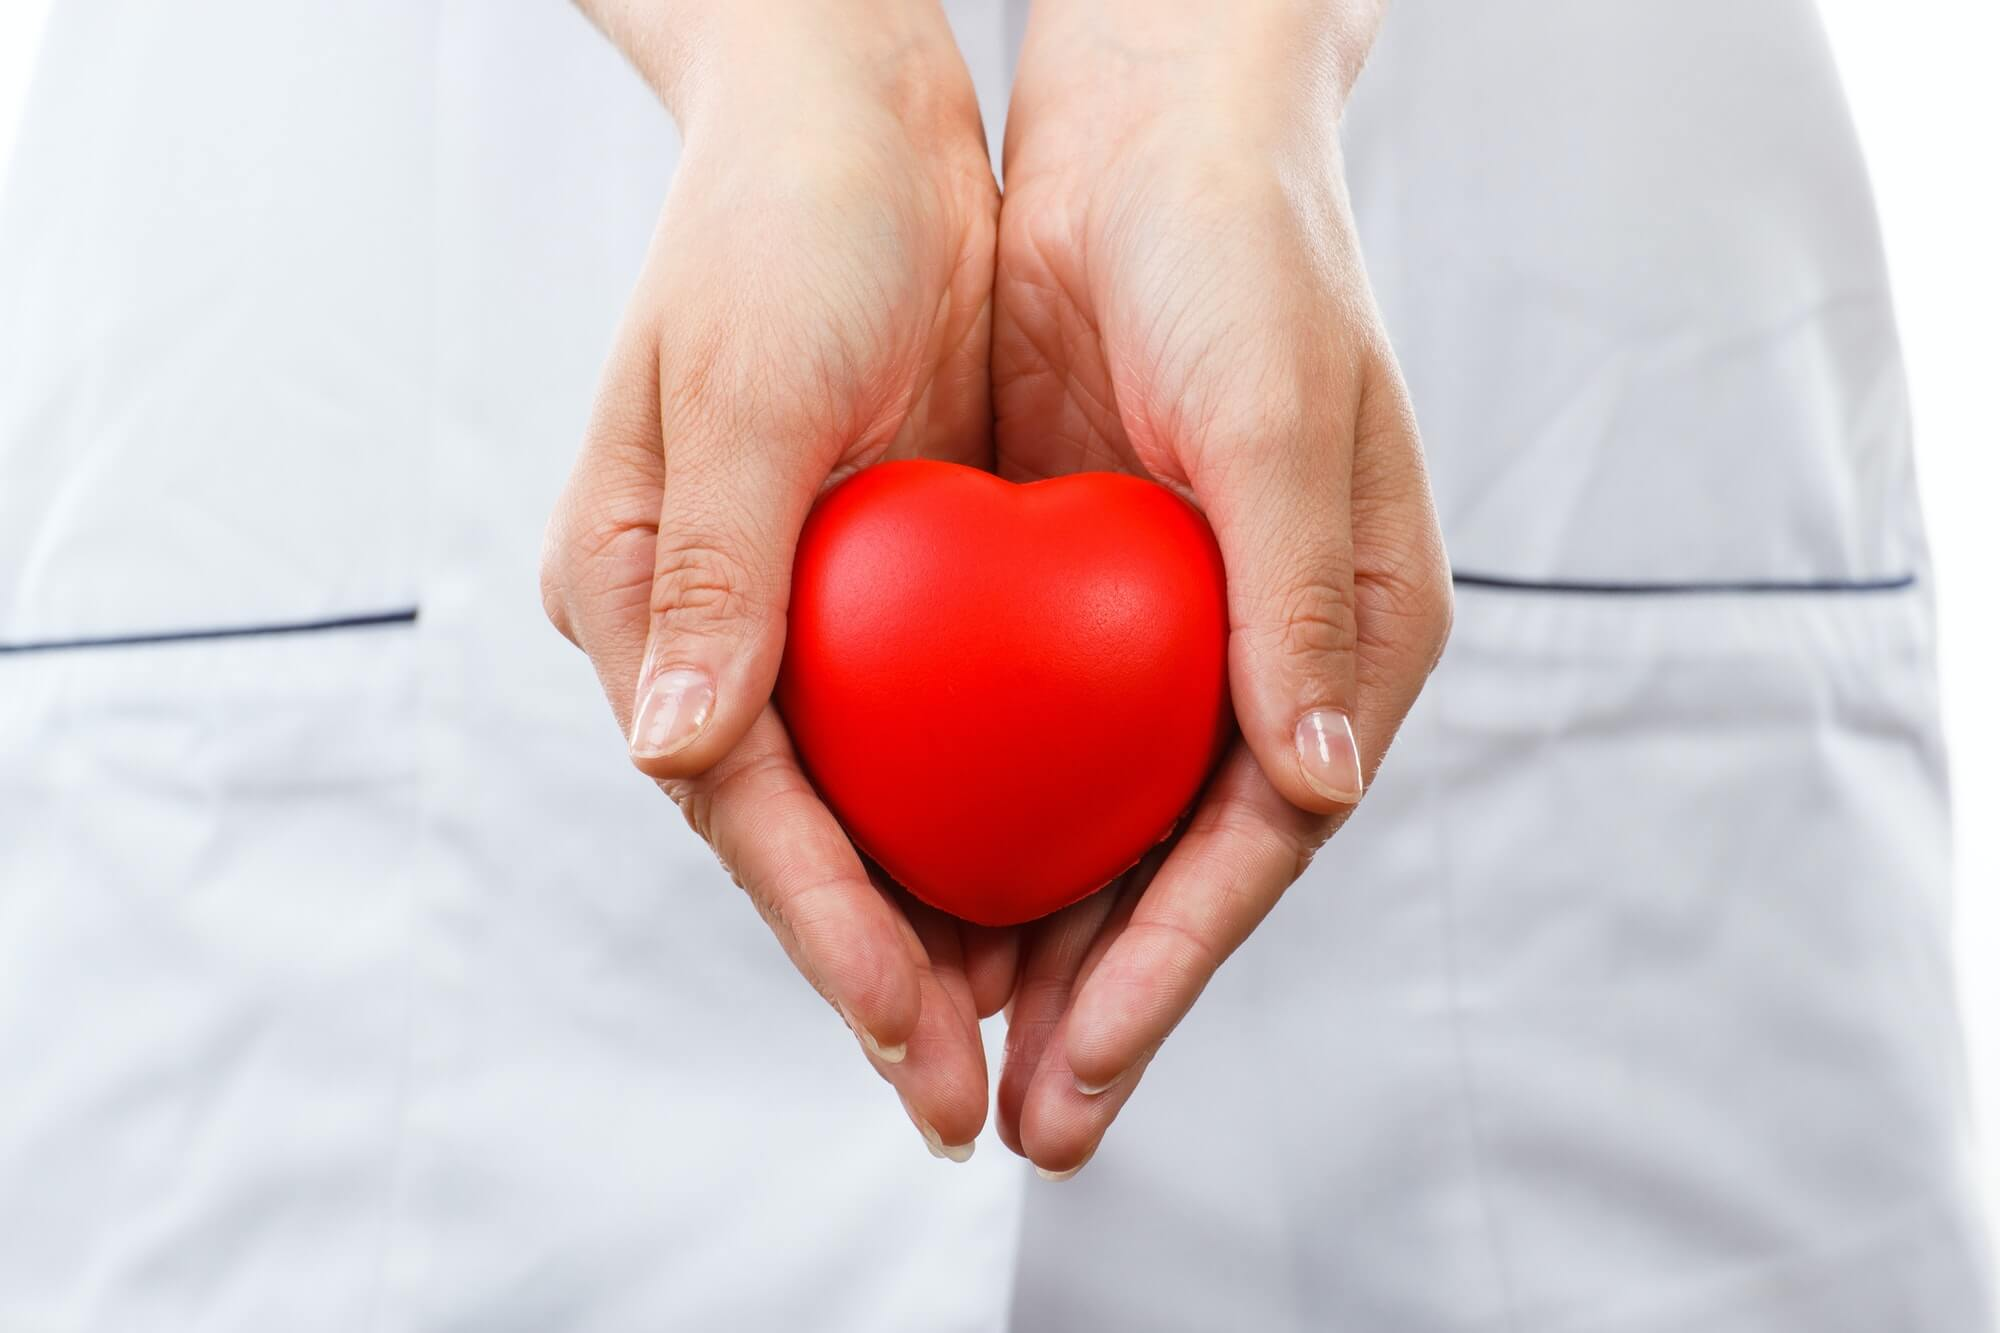 Doctor holding red heart in hand, healthcare concept